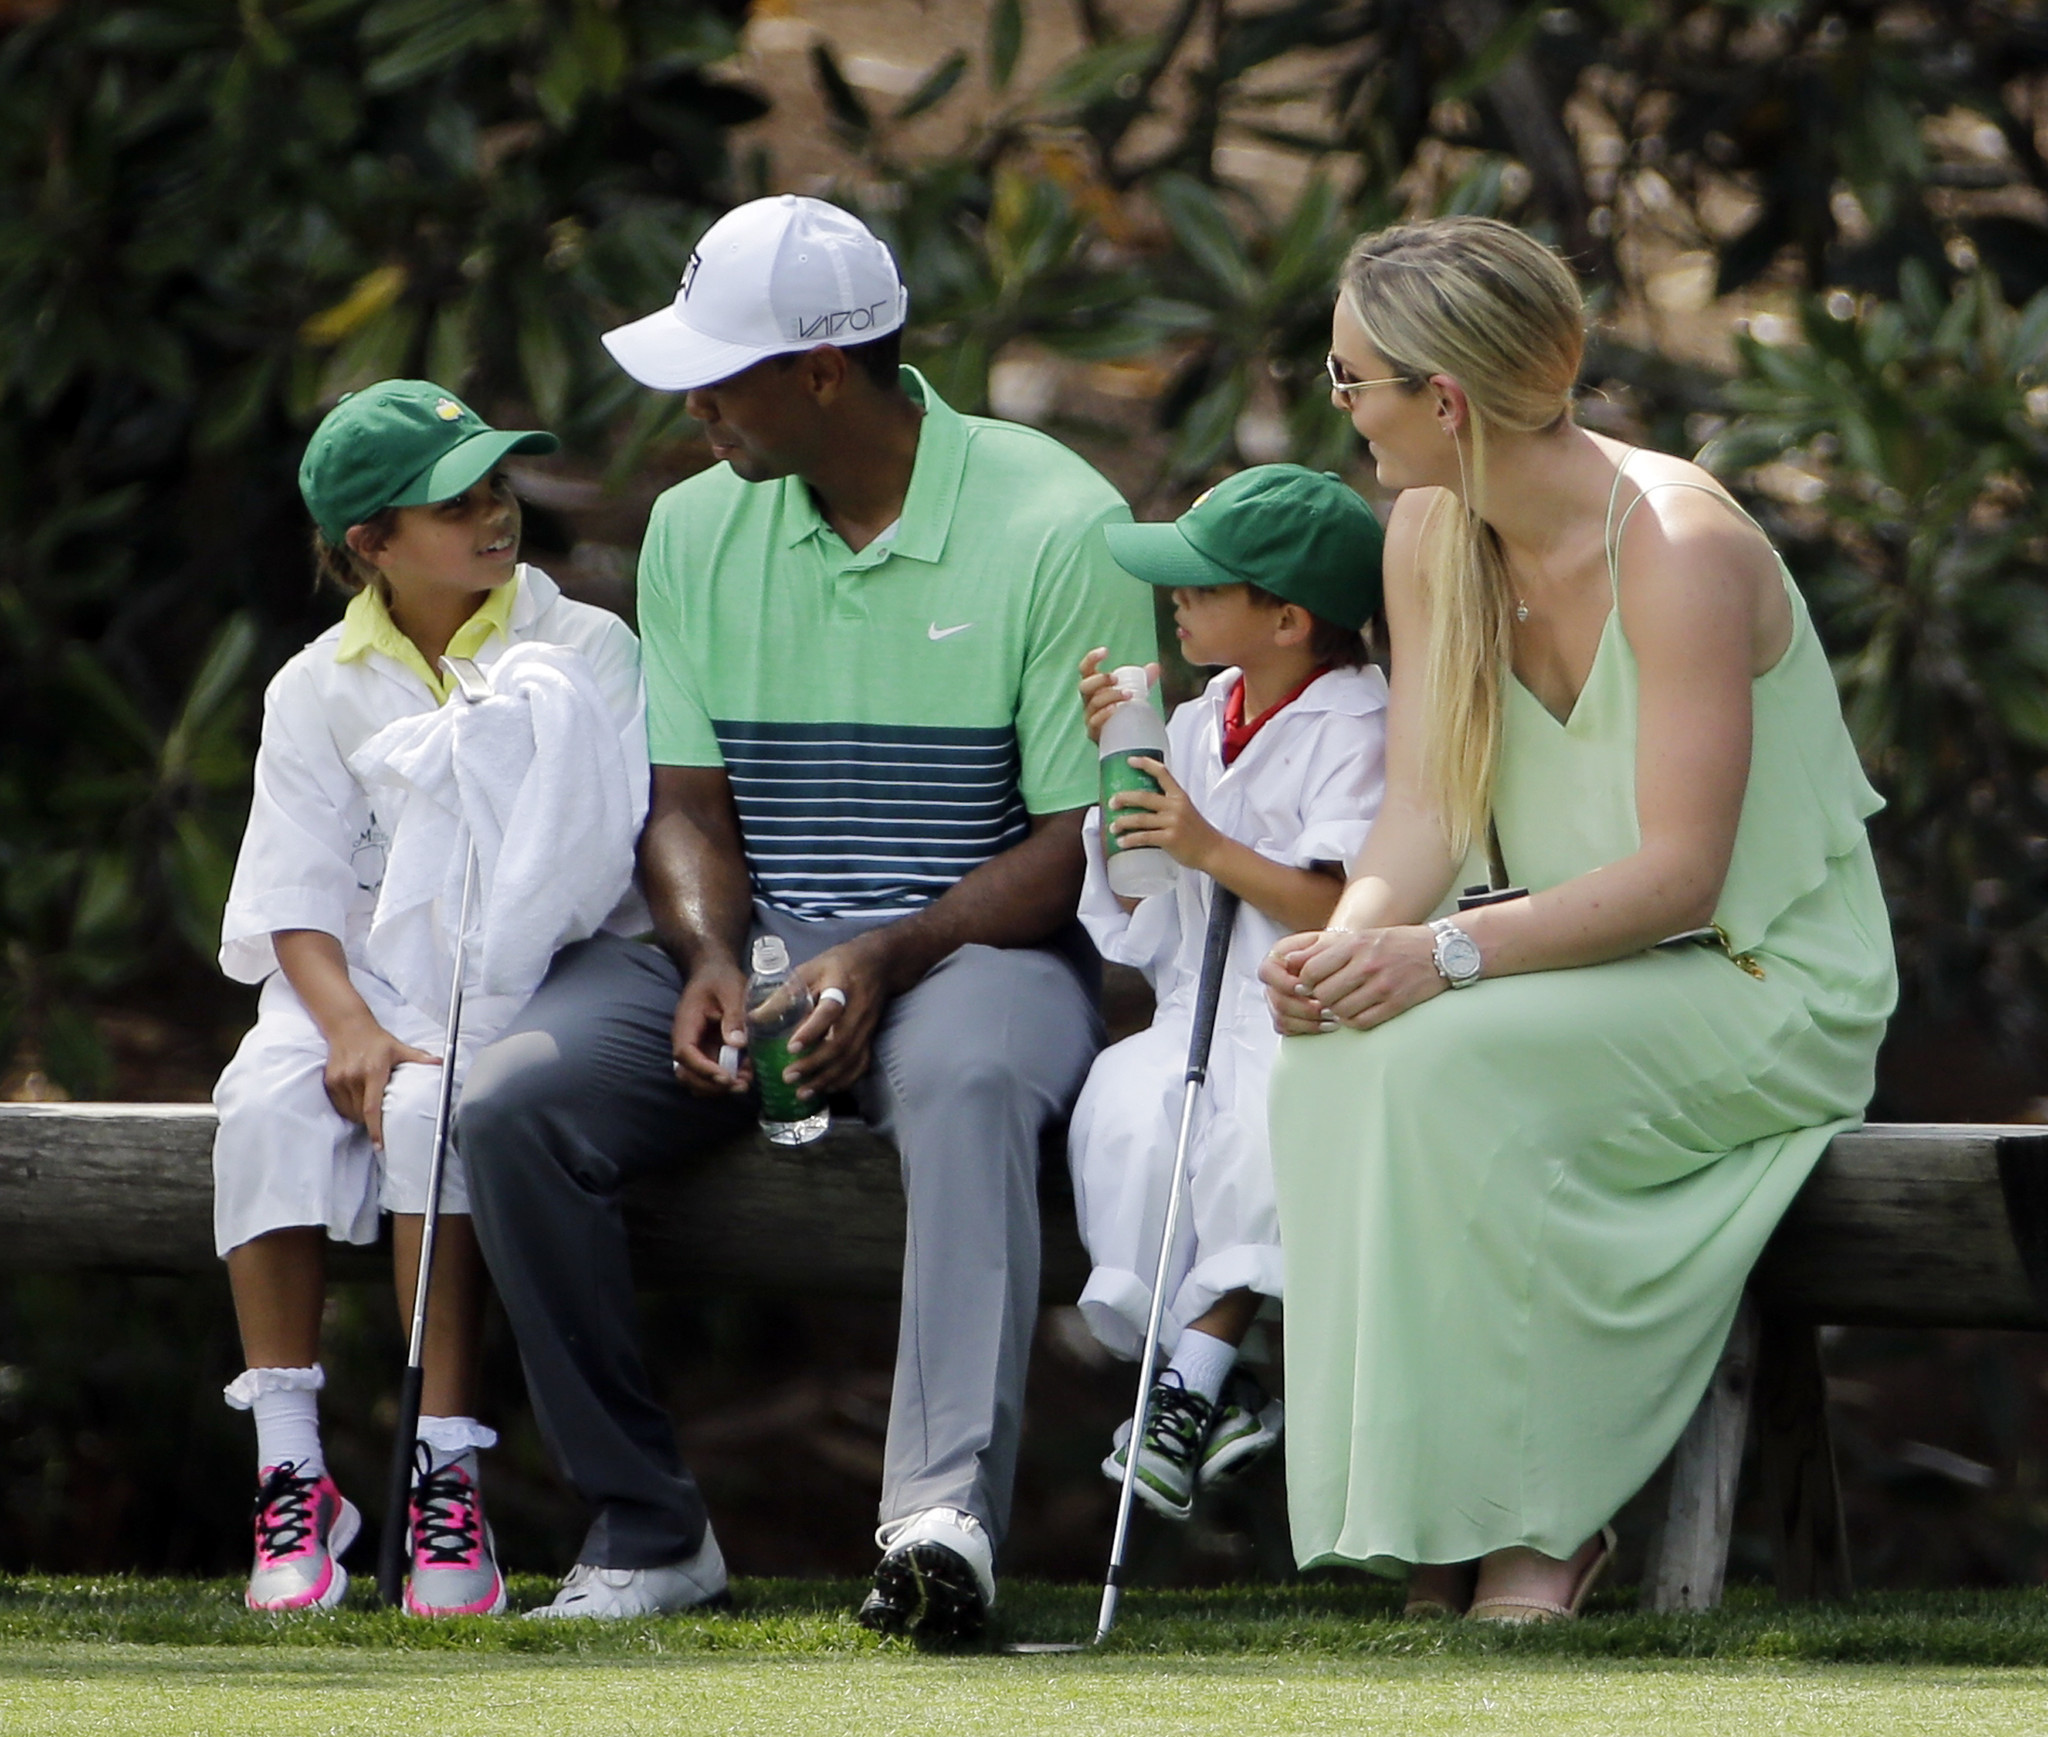 tiger woods and special caddies at masters